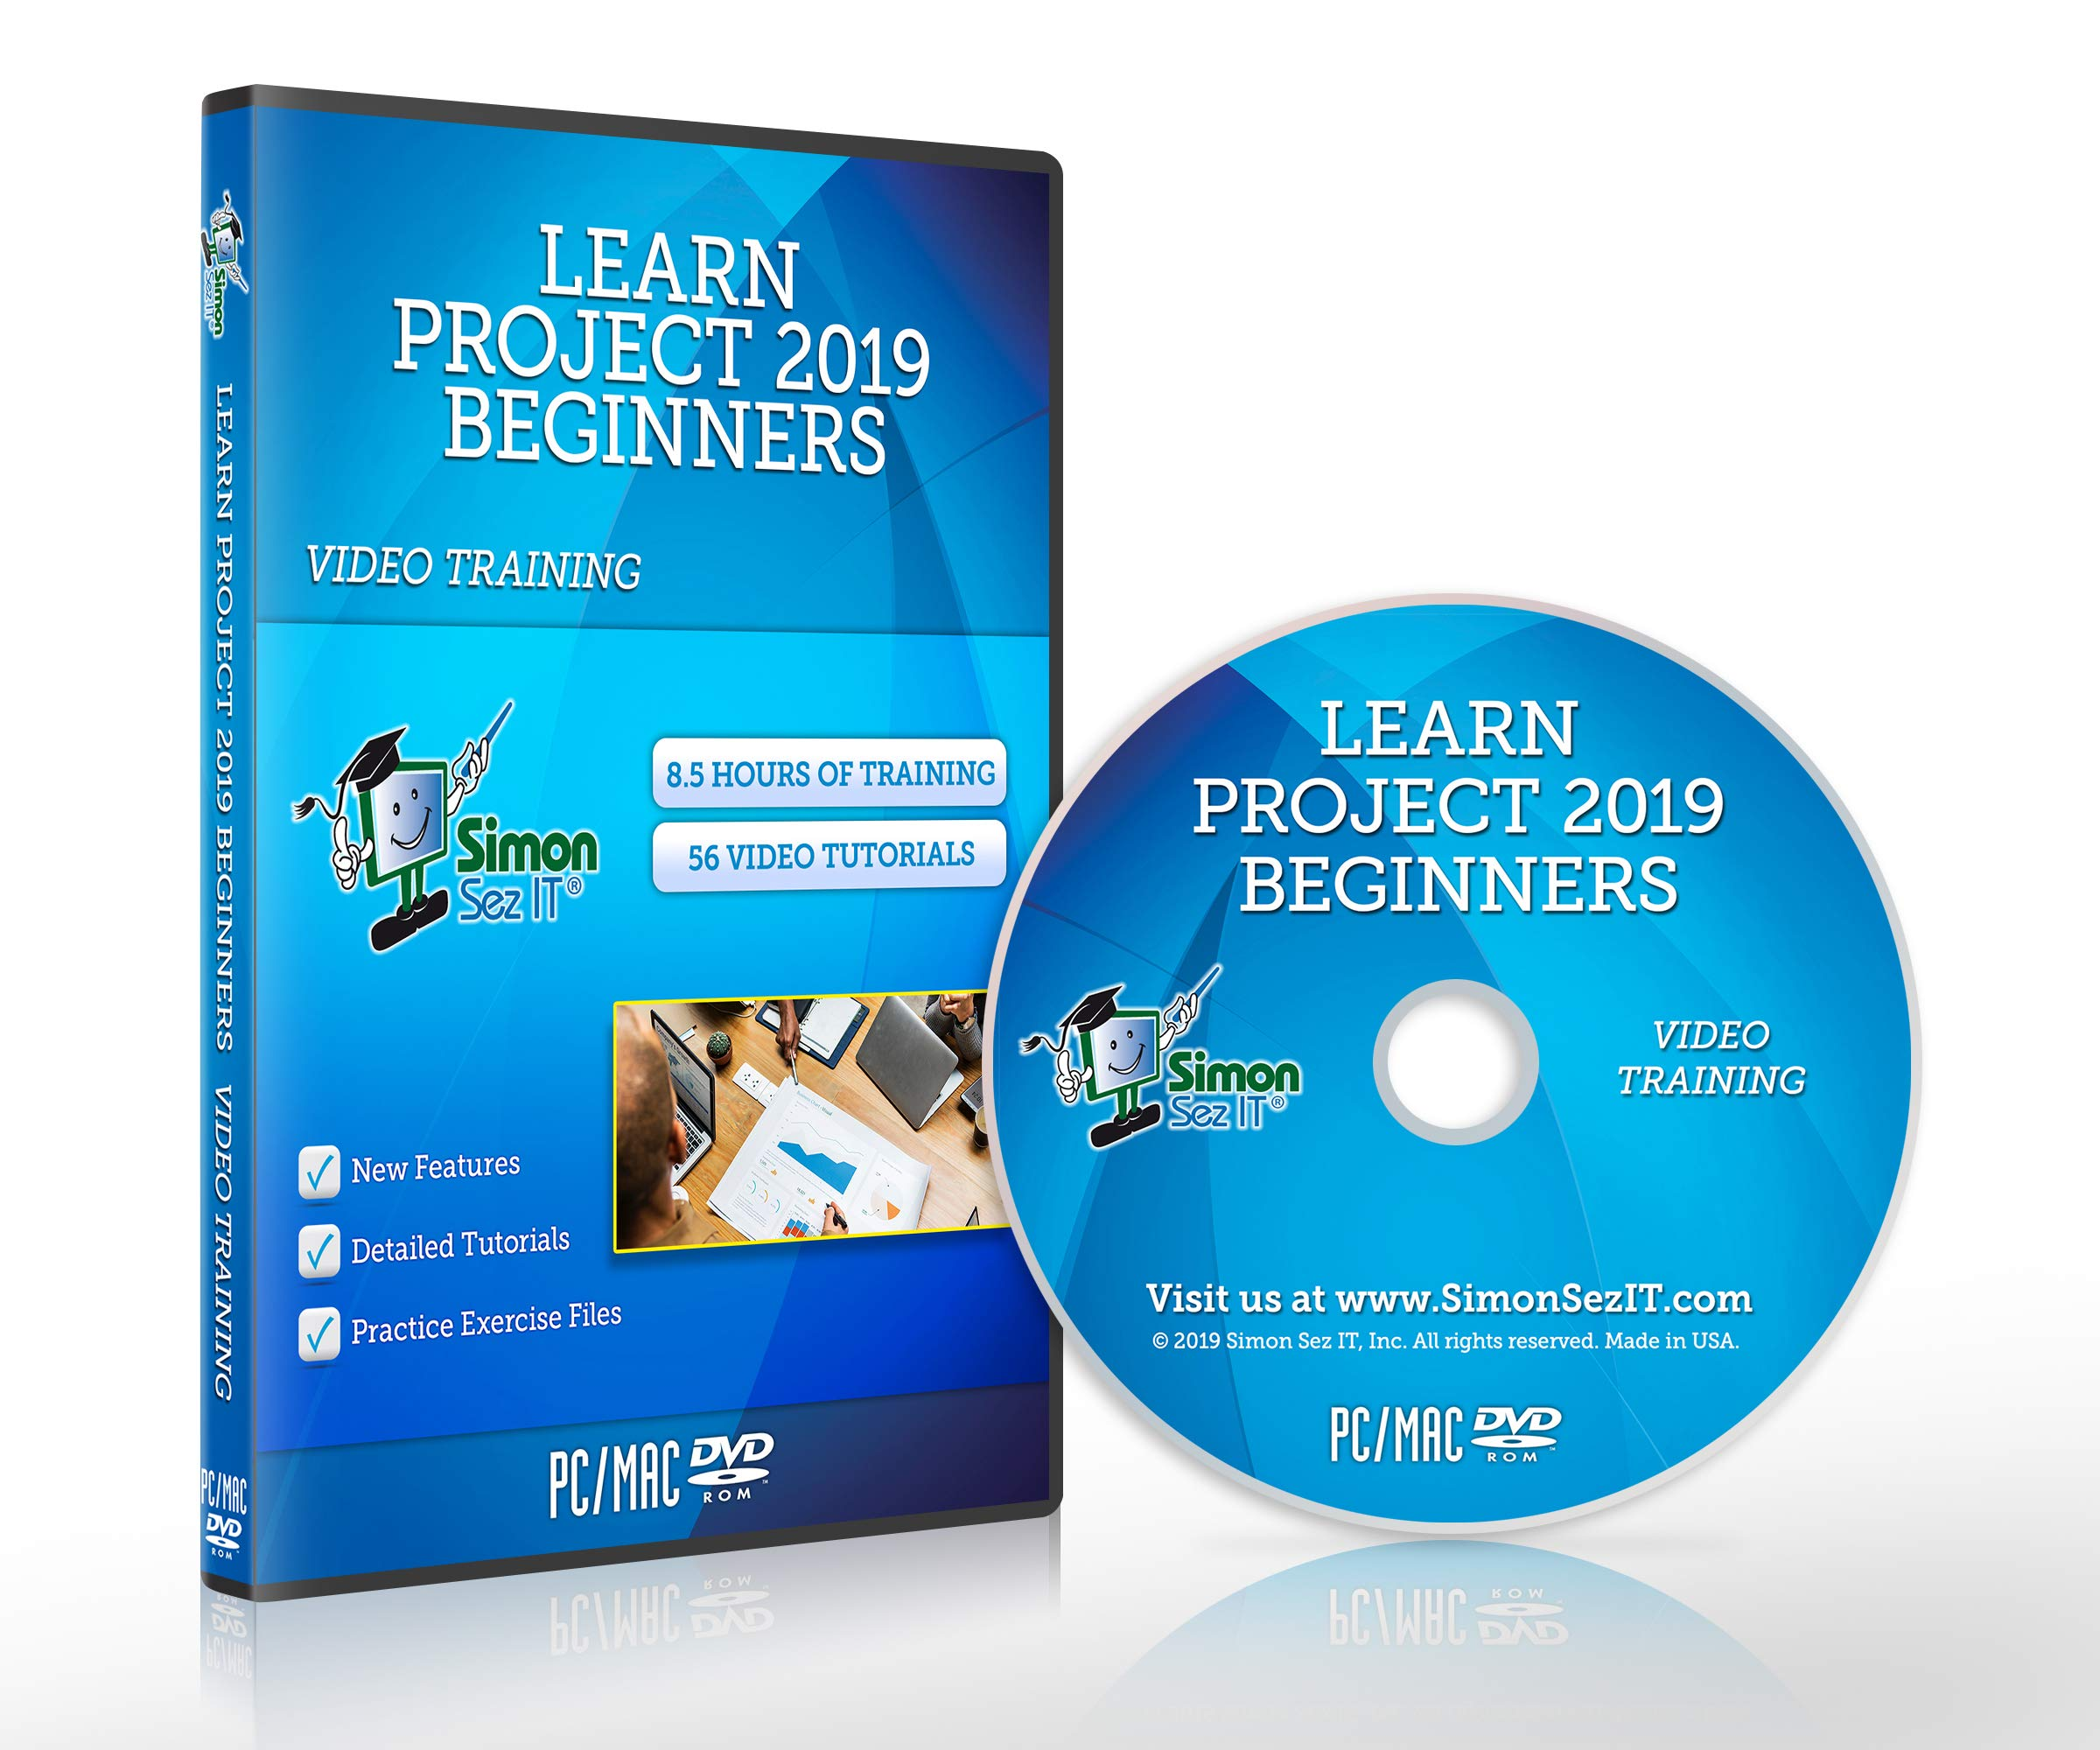 Project 2019 Training. Master MS Project 2019 with a 9-hour DVD Video Training Course by Simon Sez IT